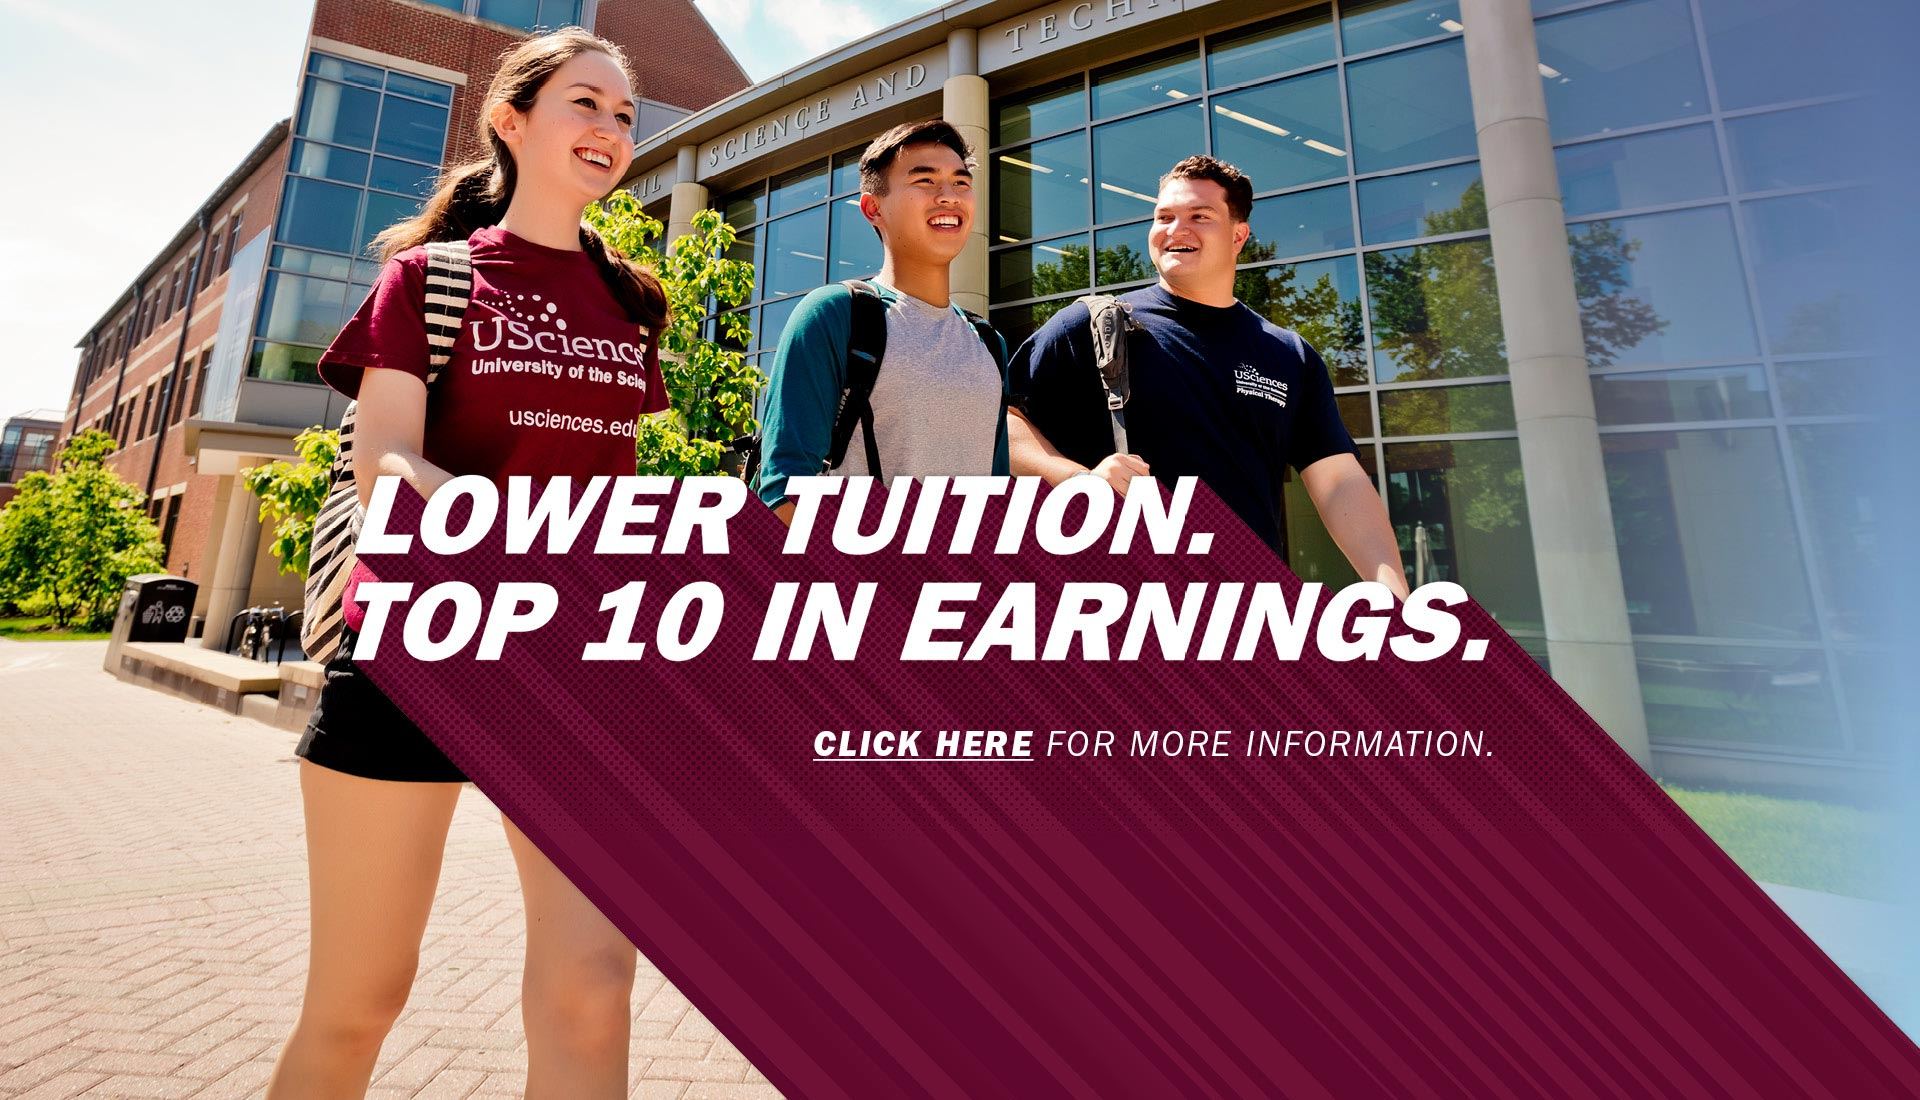 Lower Tuition. Top 10 in Earnings. Click here for more.